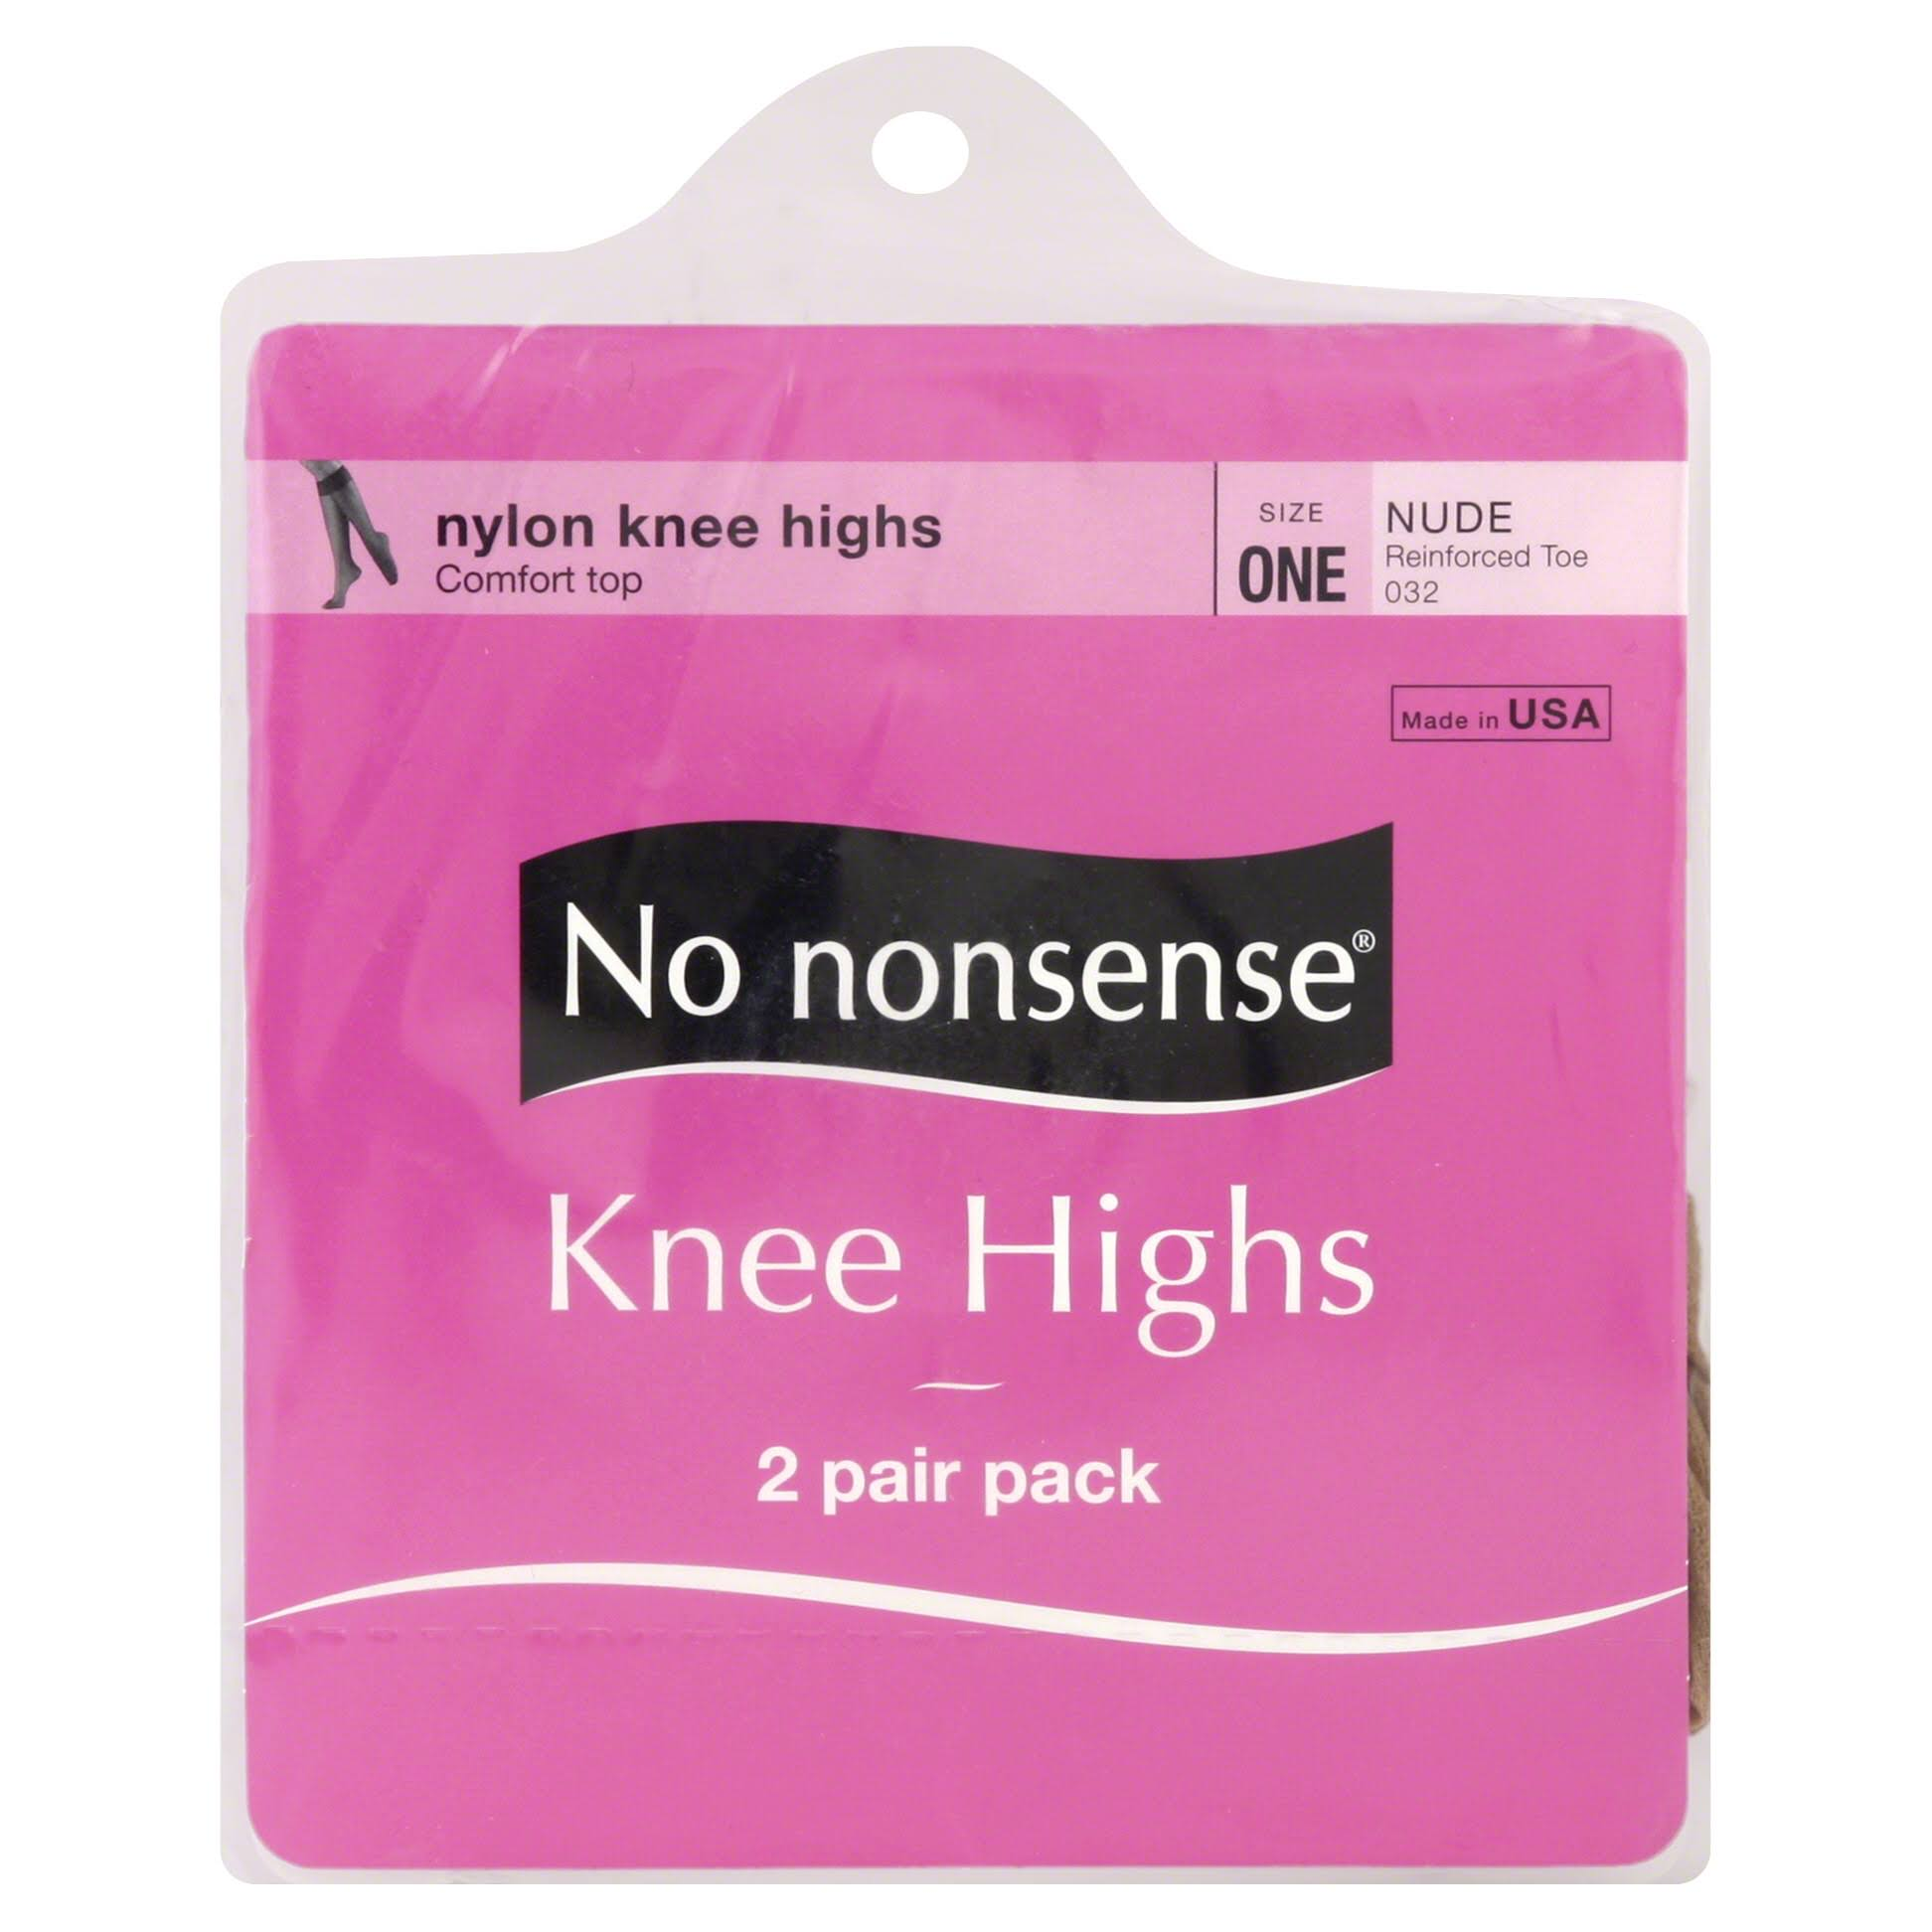 No Nonsense Knee Highs, Reinforced Toe, One Size, Nude - 2 pair